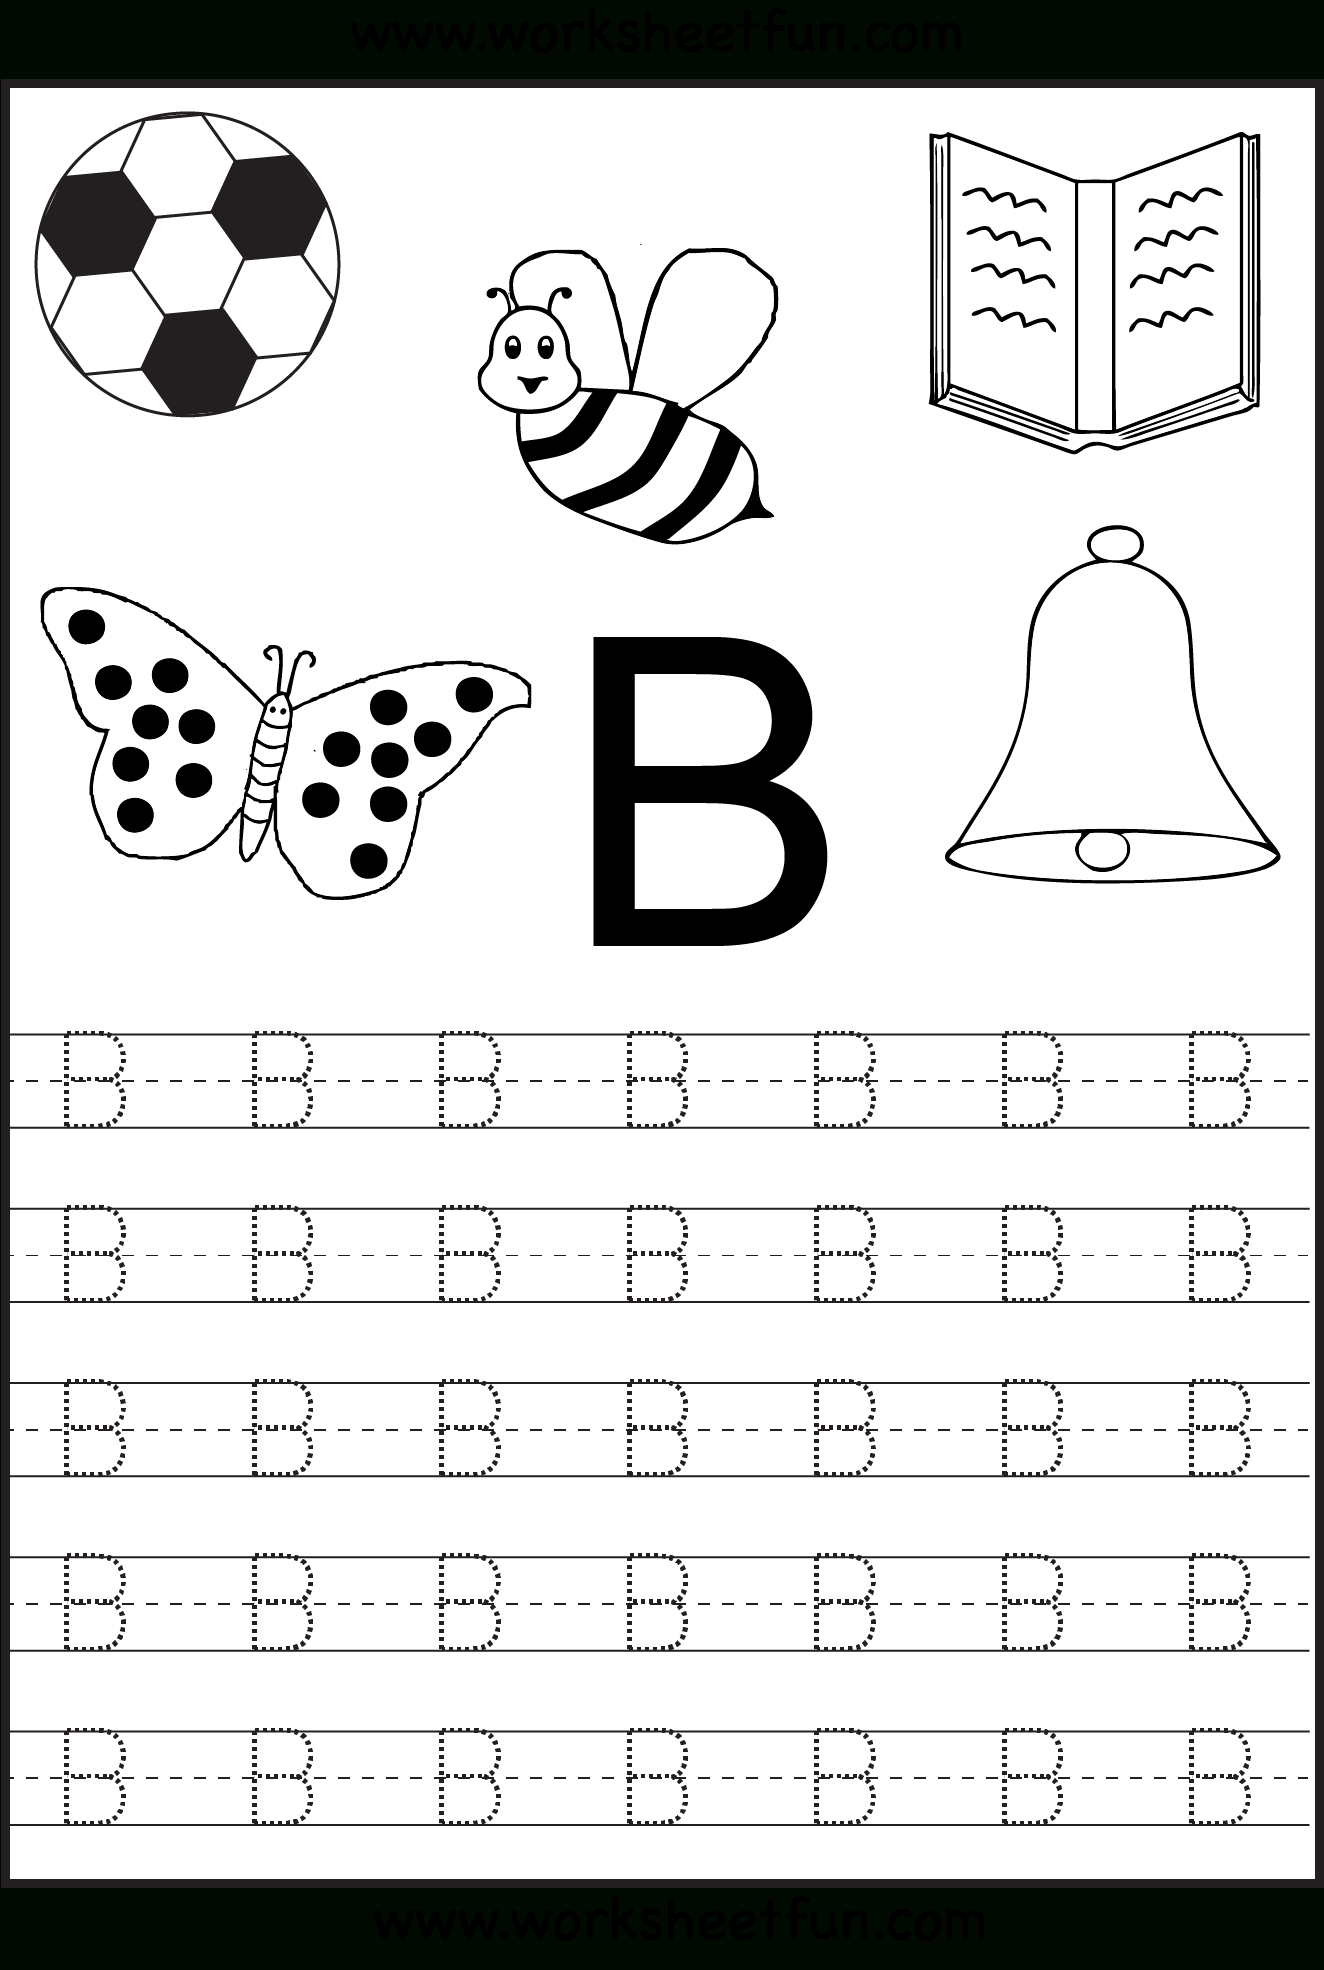 Free Printable Letter Tracing Worksheets For Kindergarten – 26 | Free Printable Abc Tracing Worksheets